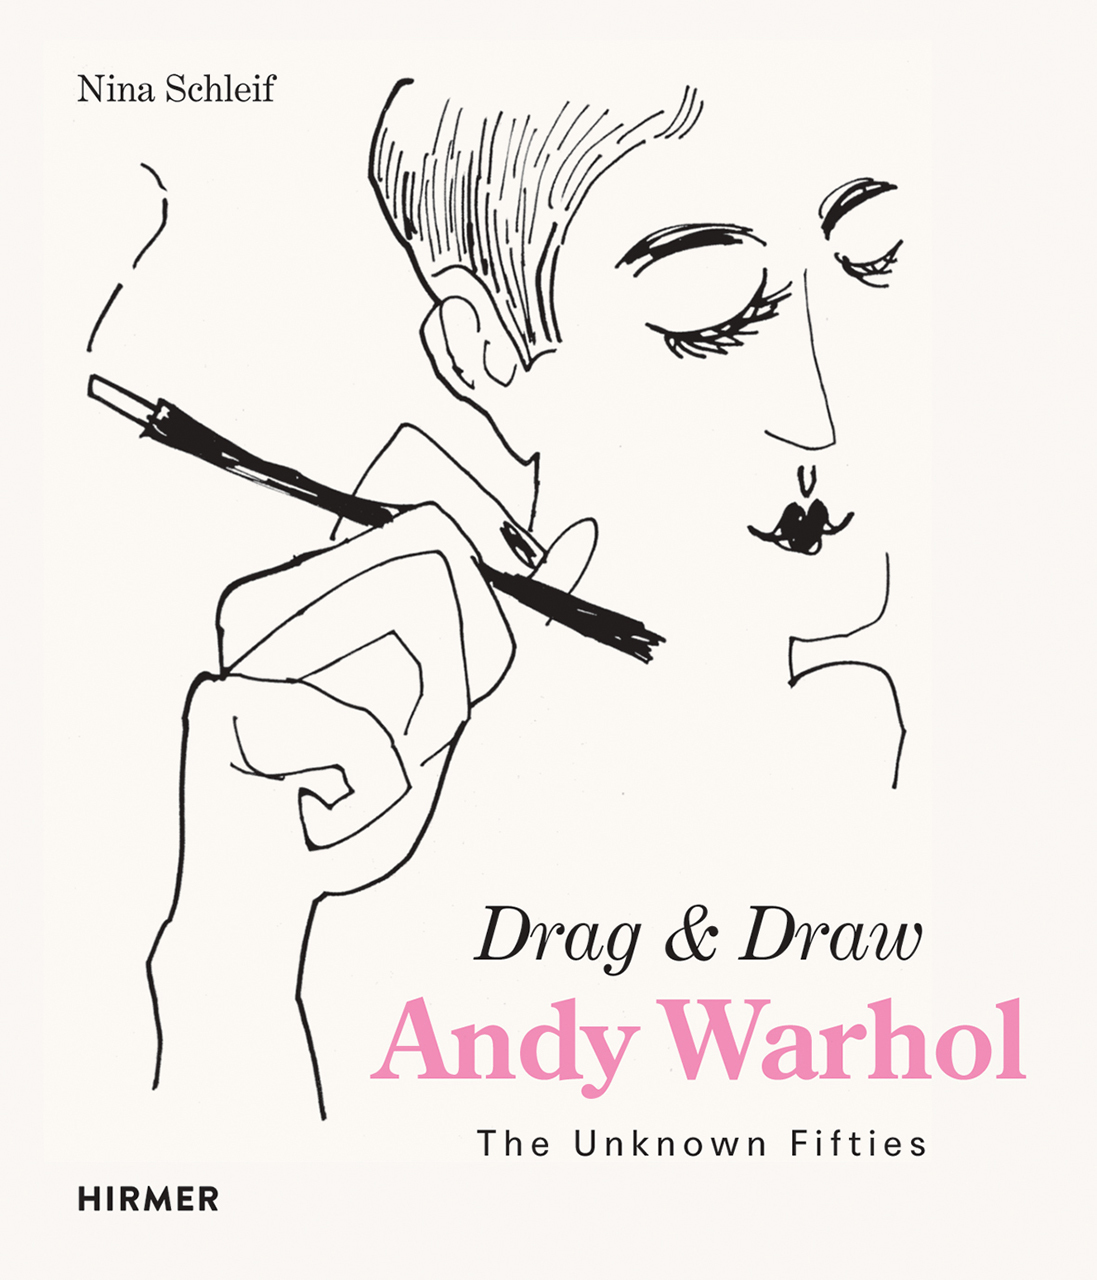 Andy Warhol Drag and Draw: The Unknown Fifties